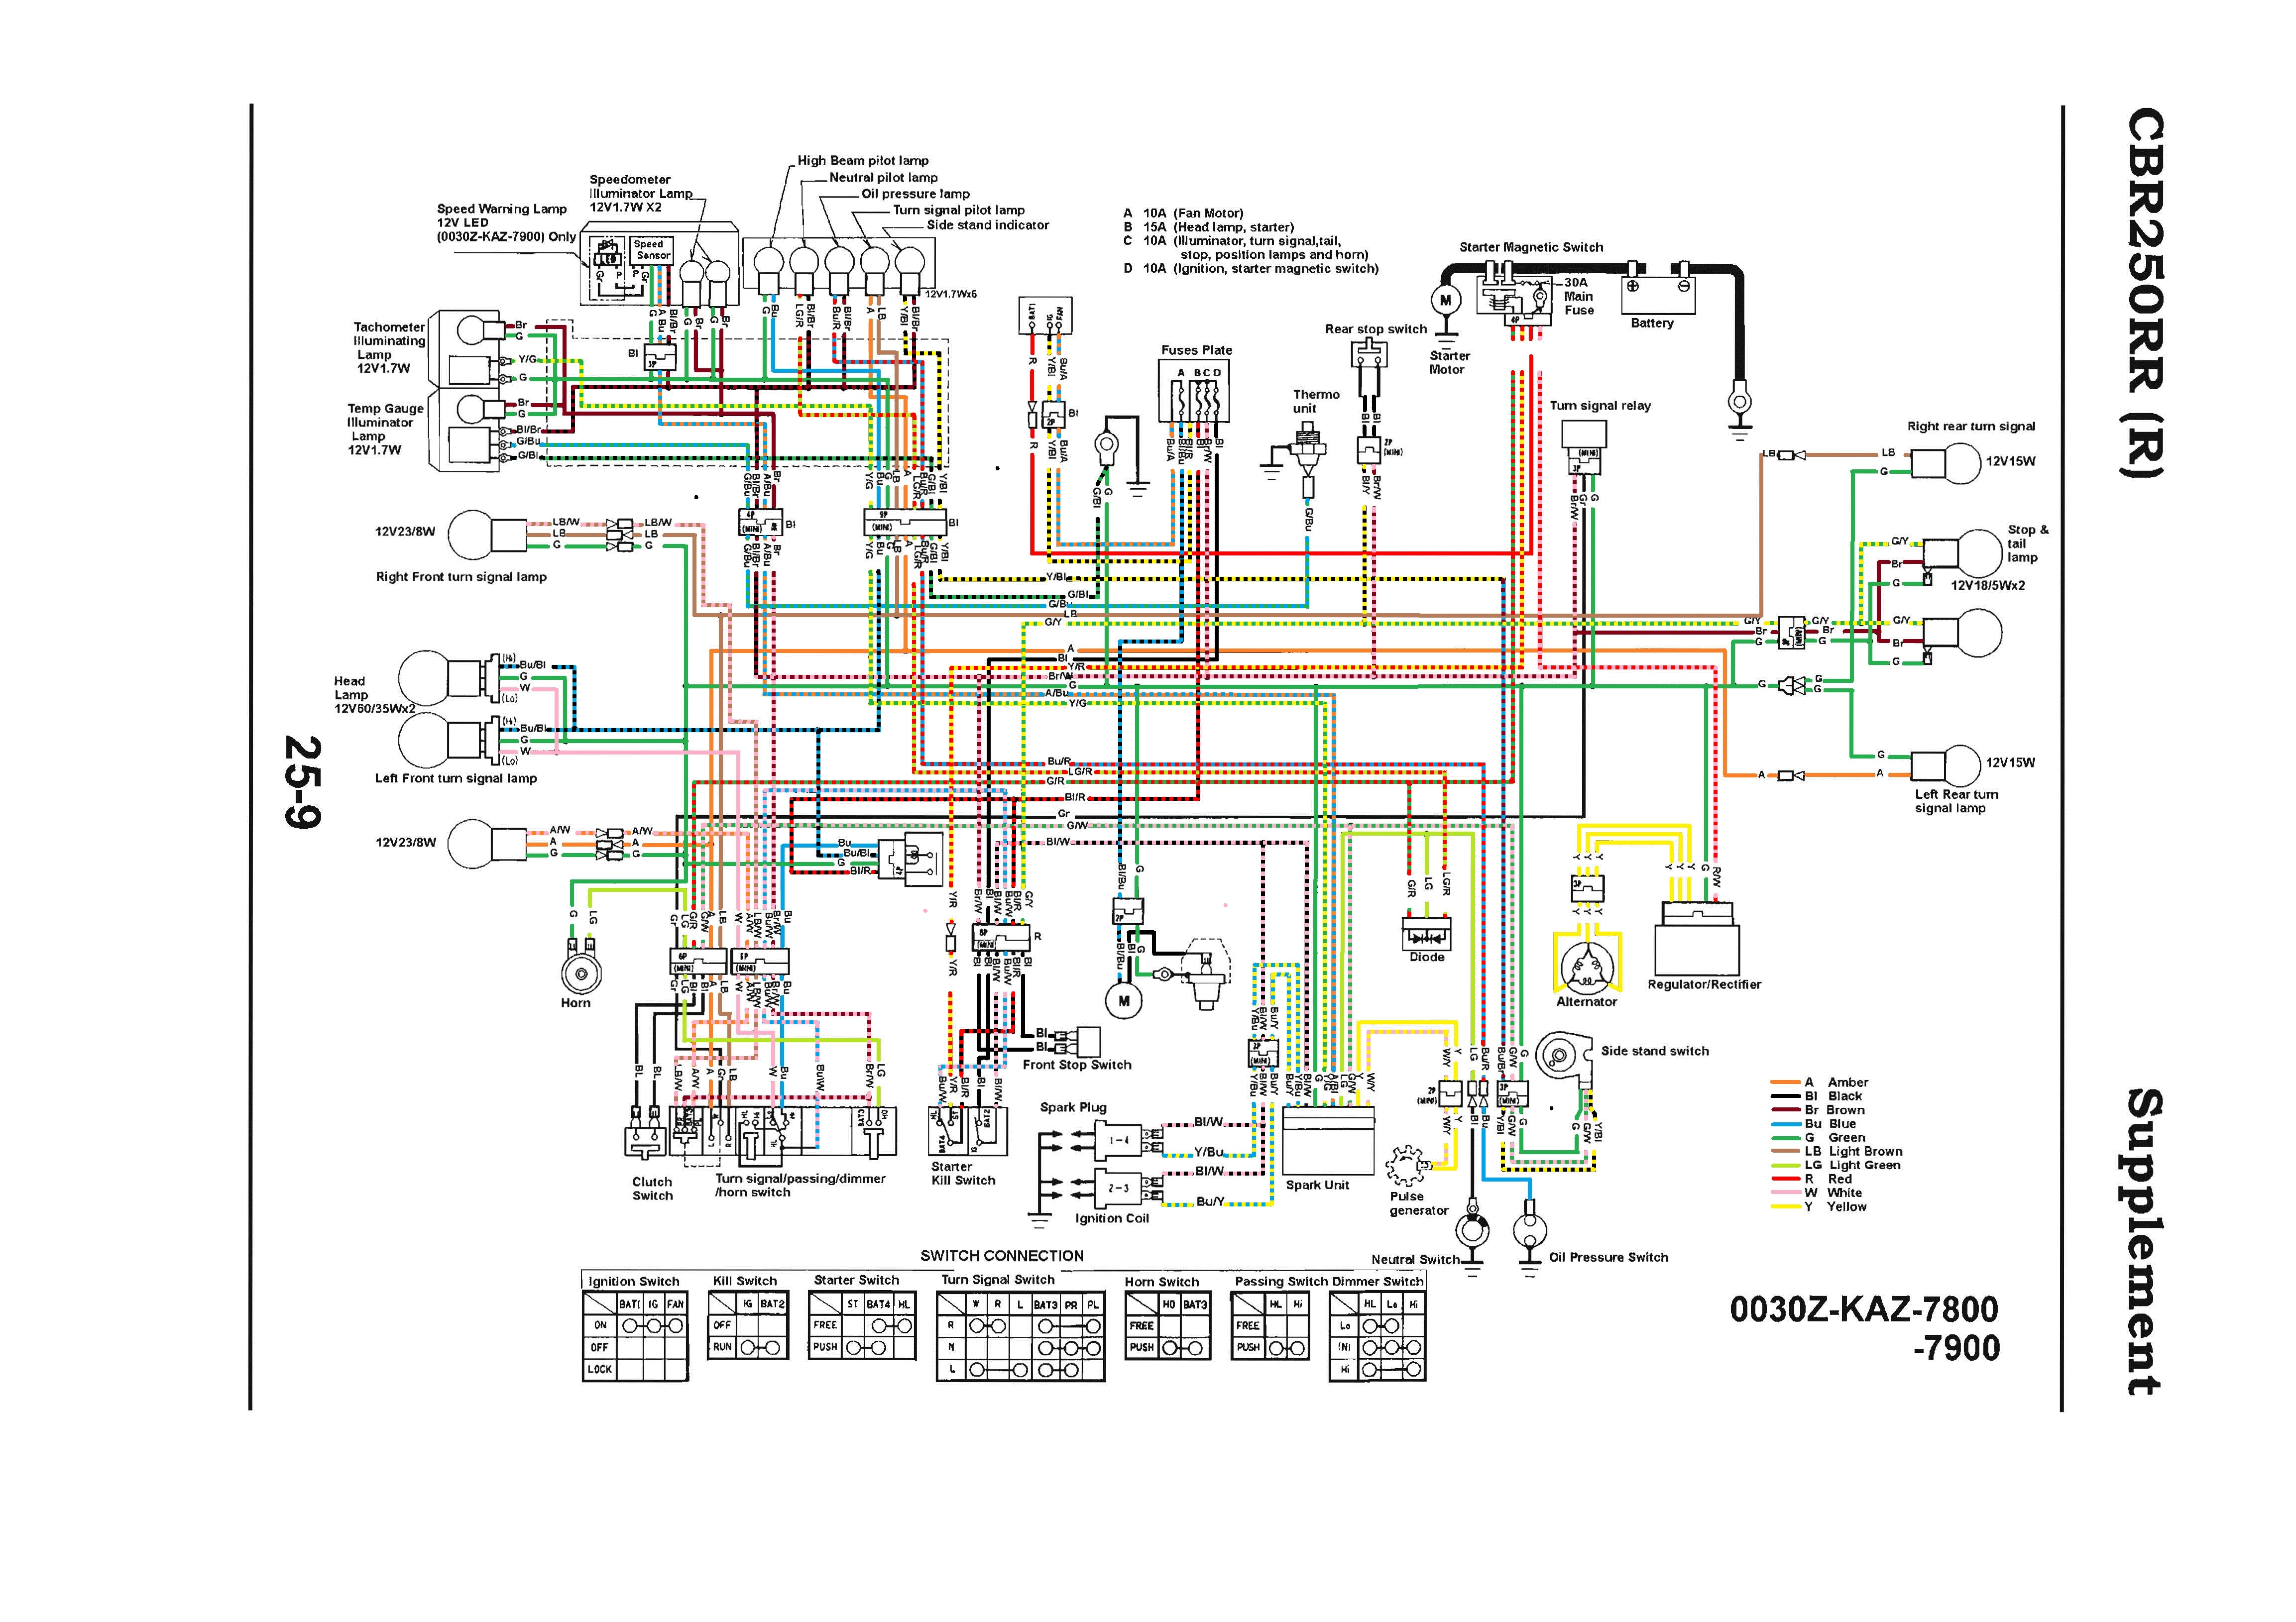 wiring diagram for grote turn signal switch the wiring diagram grote turn signal switch wiring diagram nilza wiring diagram